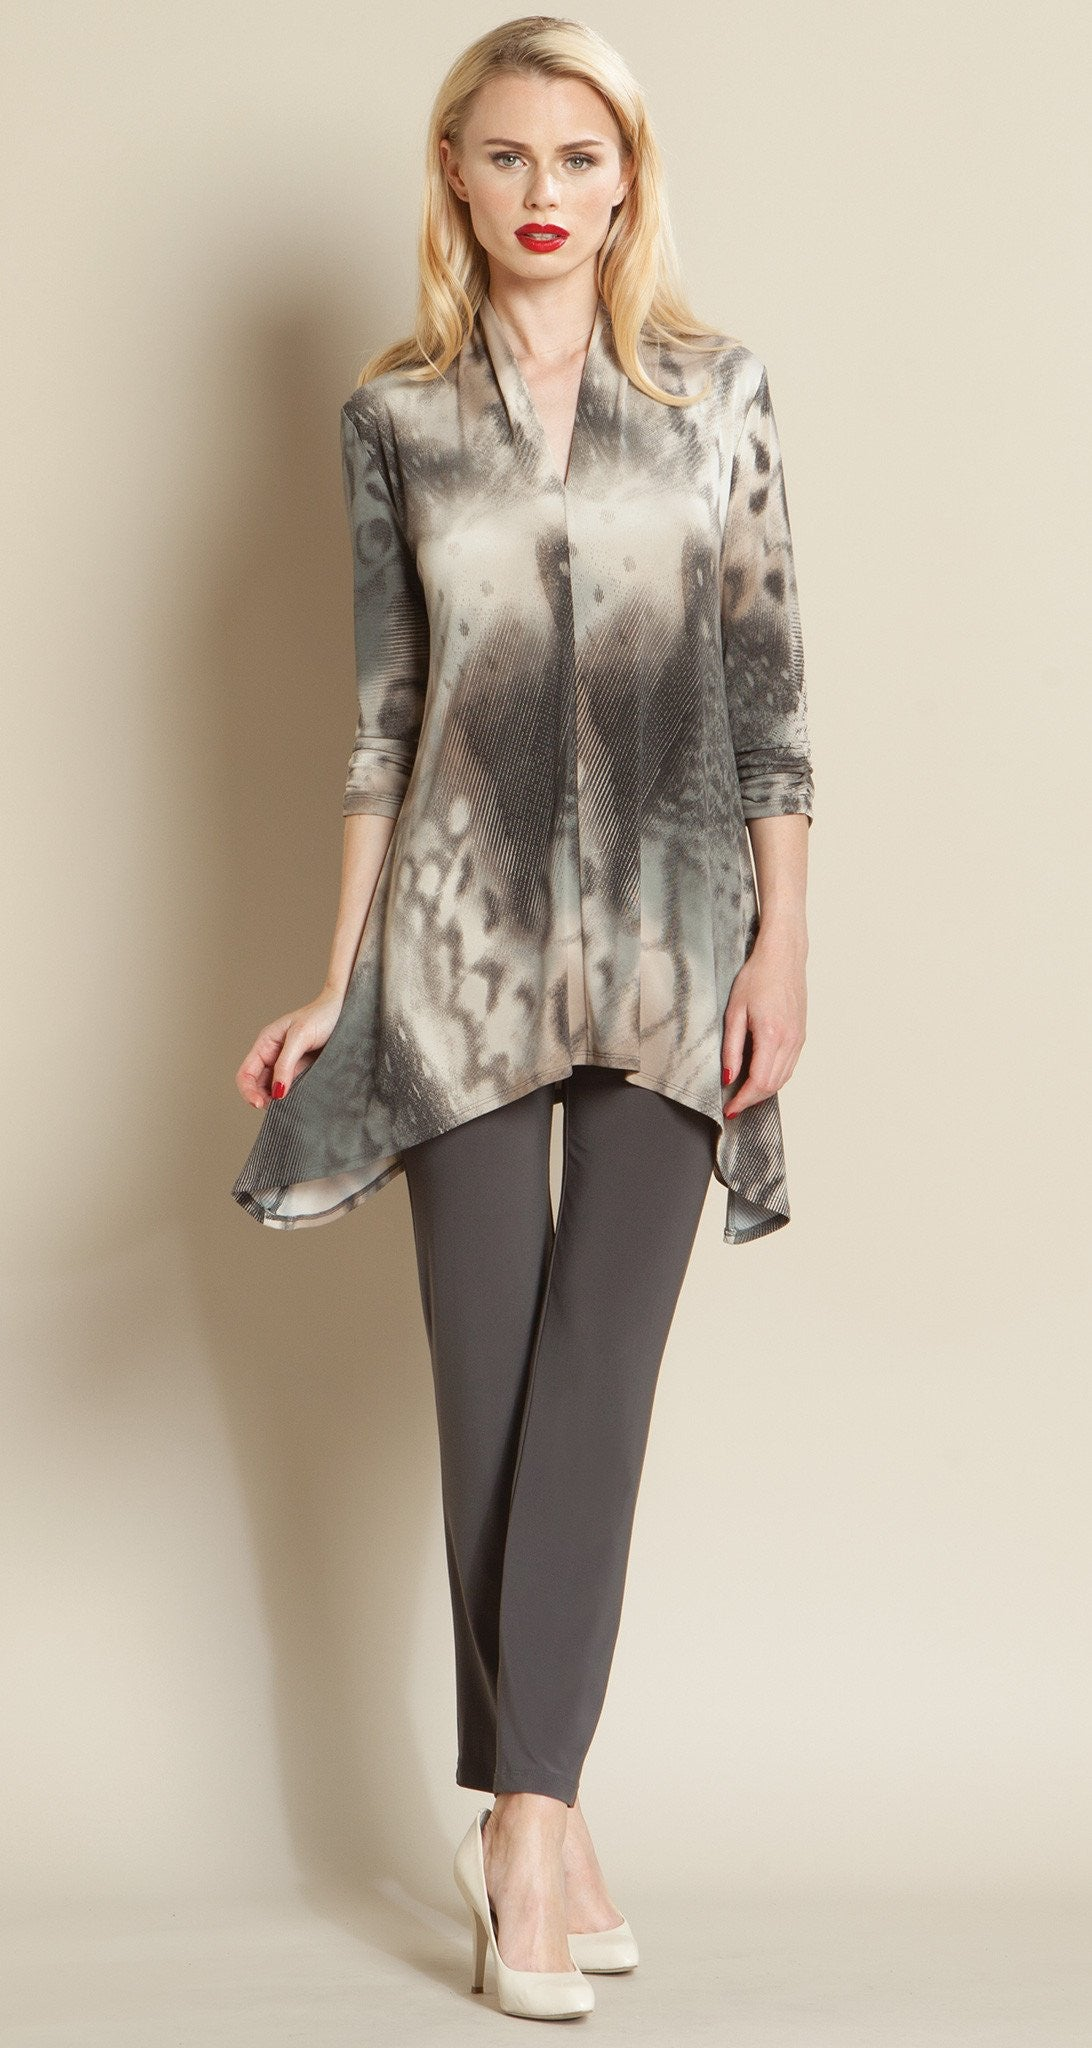 Butterfly Print Narrow V Tunic - Taupe Multi